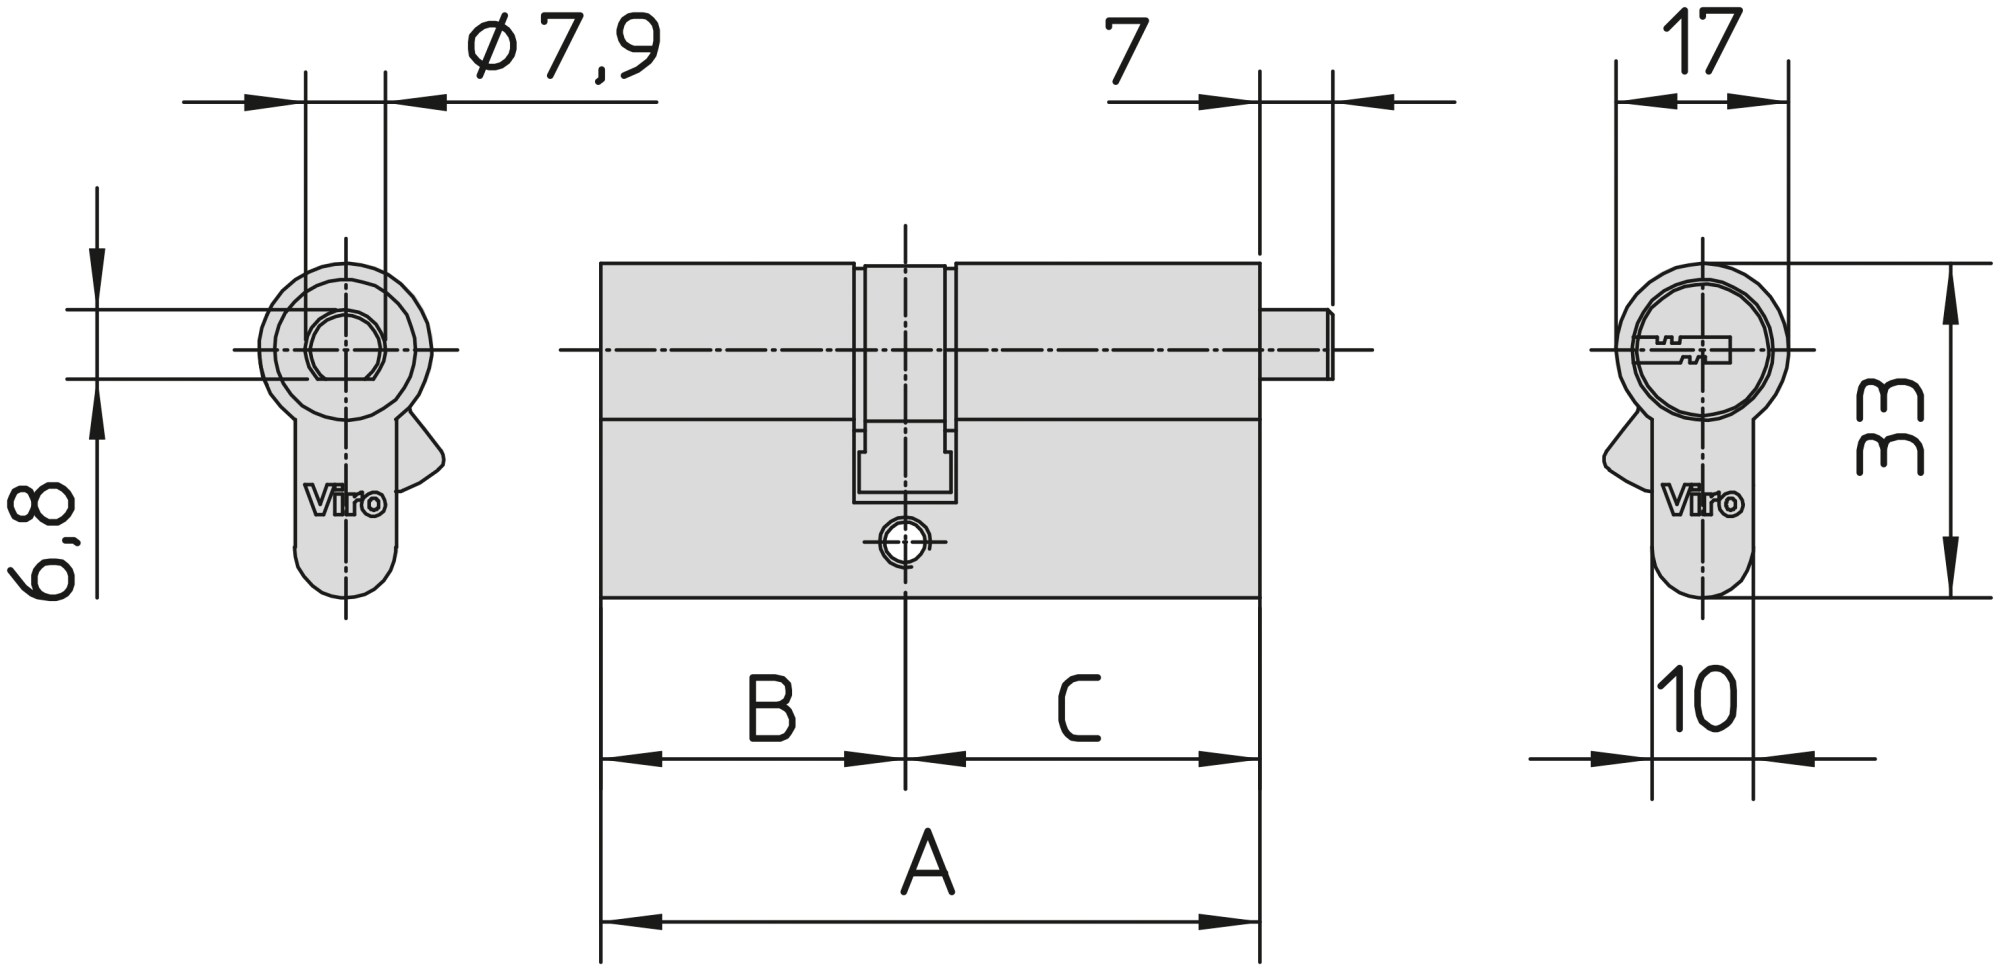 hight resolution of nuovi euro pro series cylinders with fitting for thumb turn or thumb turn extension